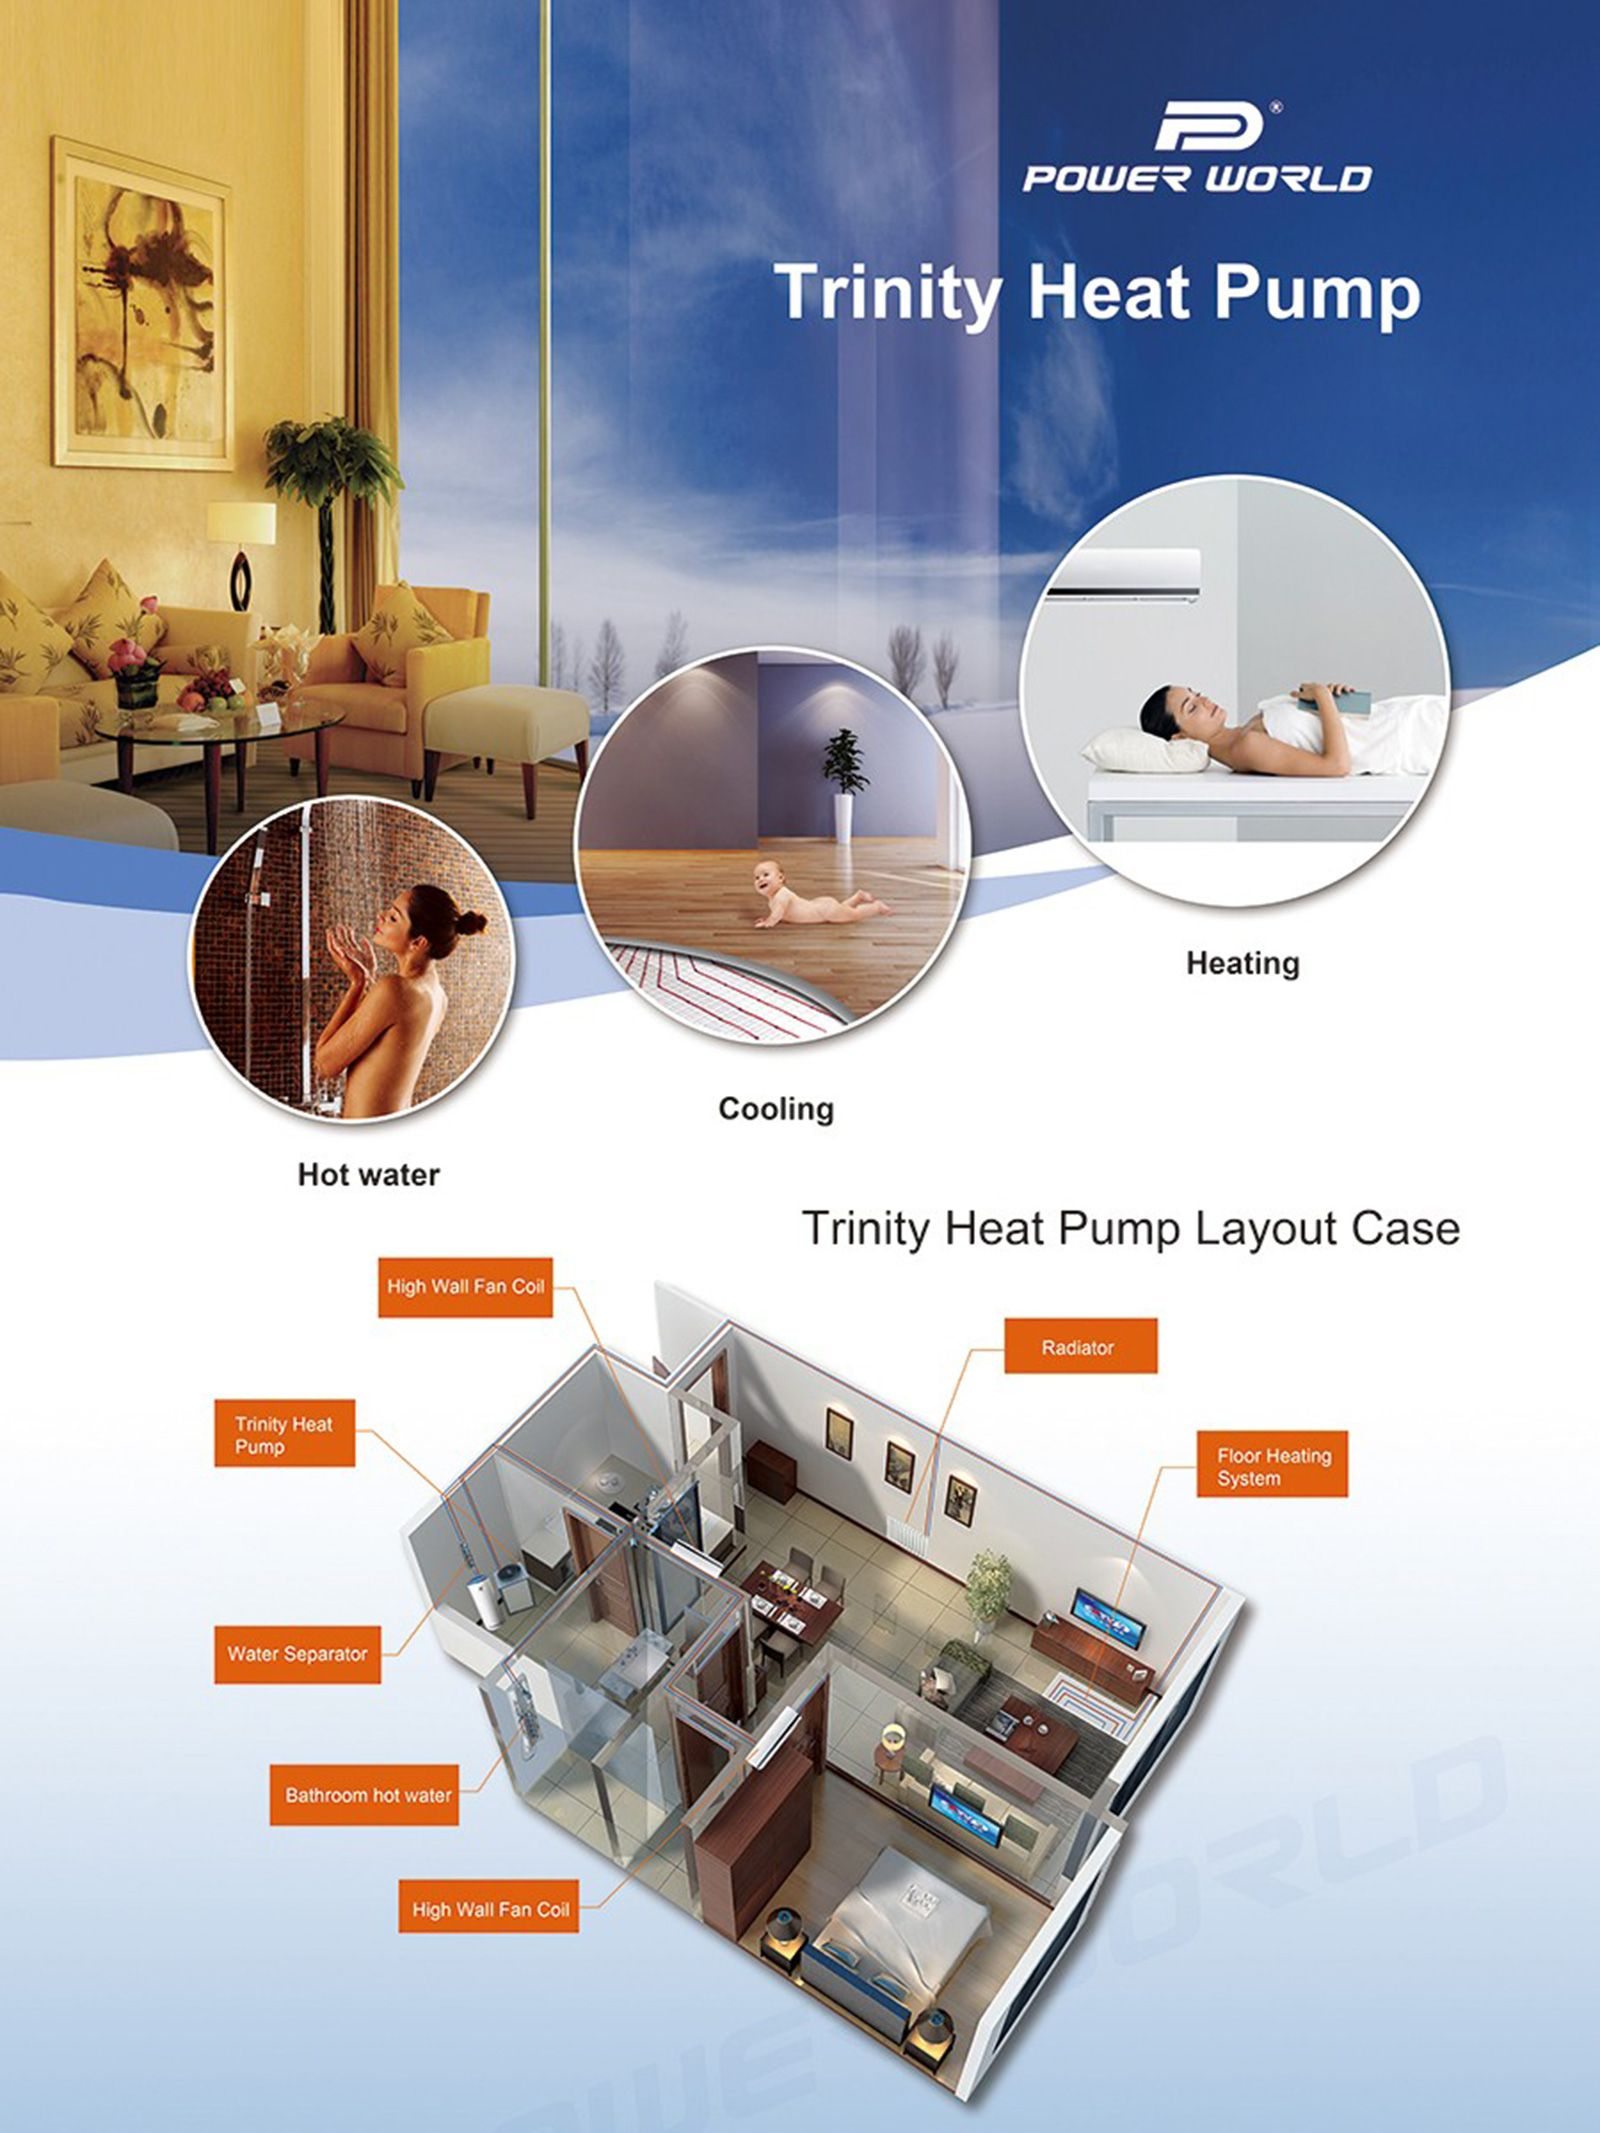 Power World Dc Inverter Heat Pump Integrates Room Heating Cooling And Domestic Hot Water Into Floor Heating Systems Domestic Hot Water Heat Pump Water Heater